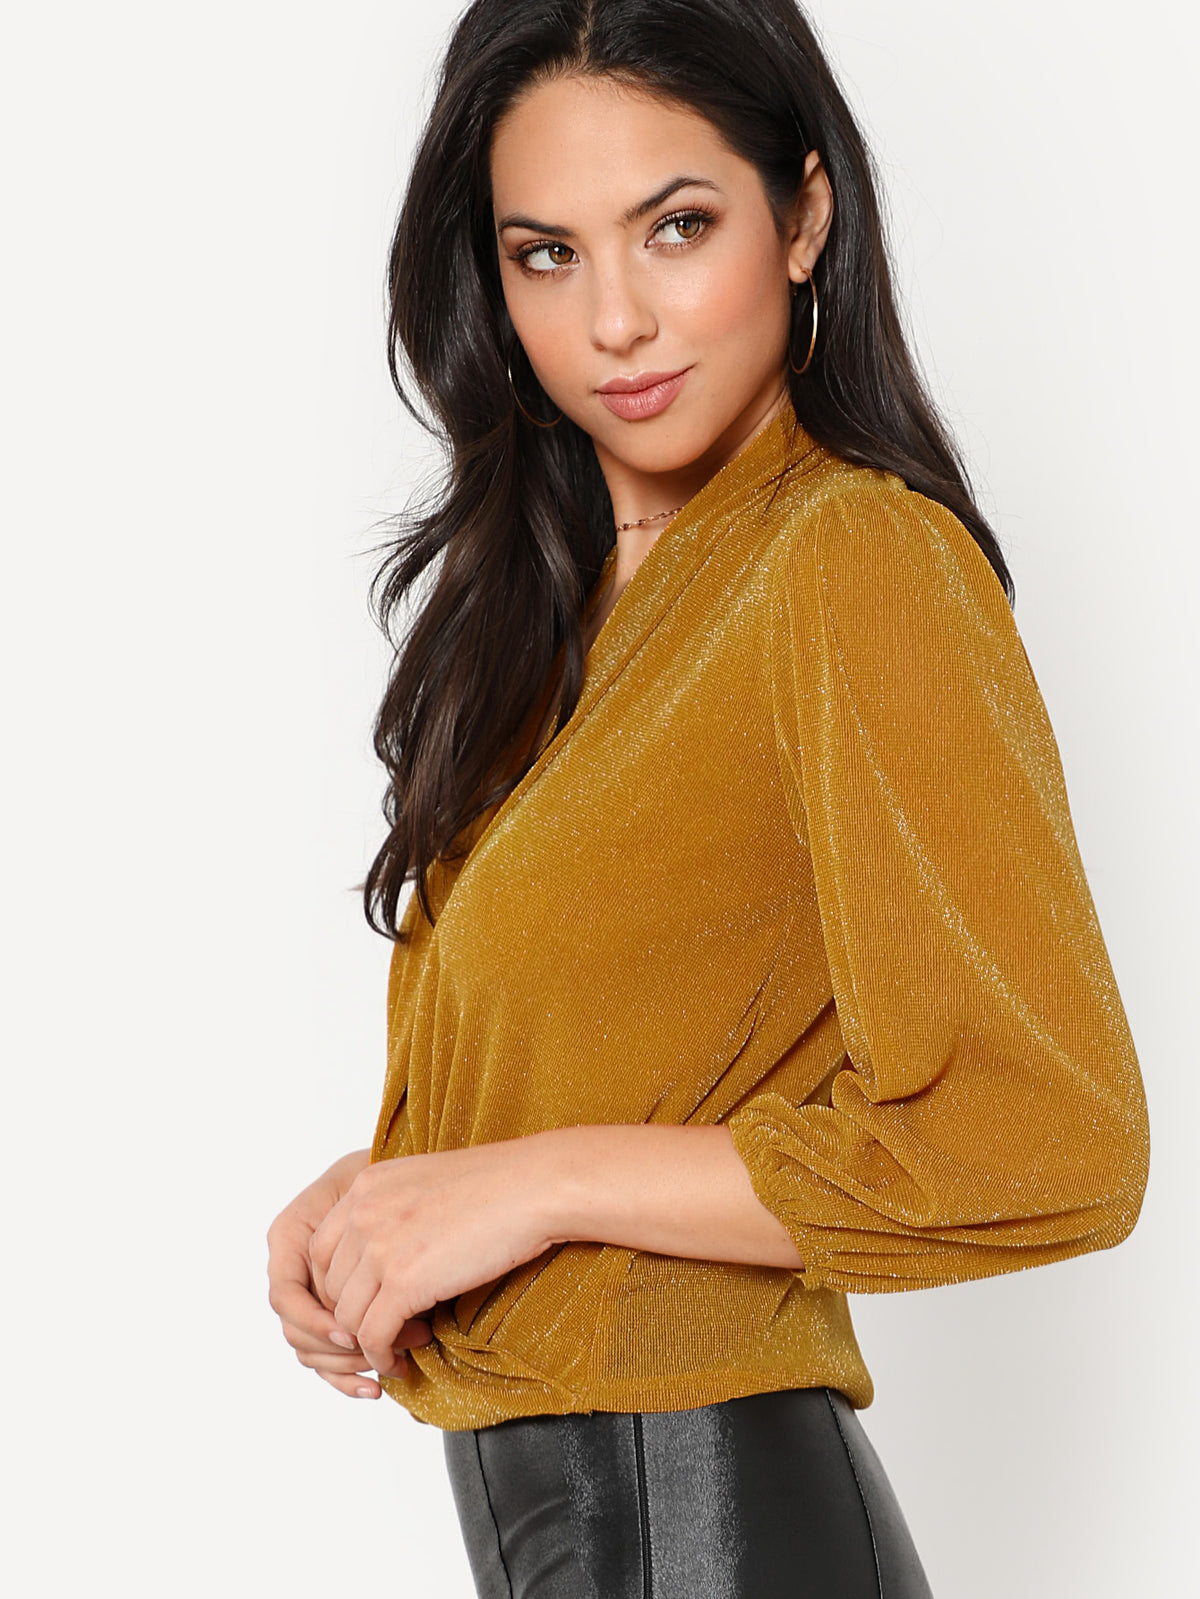 Deep V Neckline Surplice Top